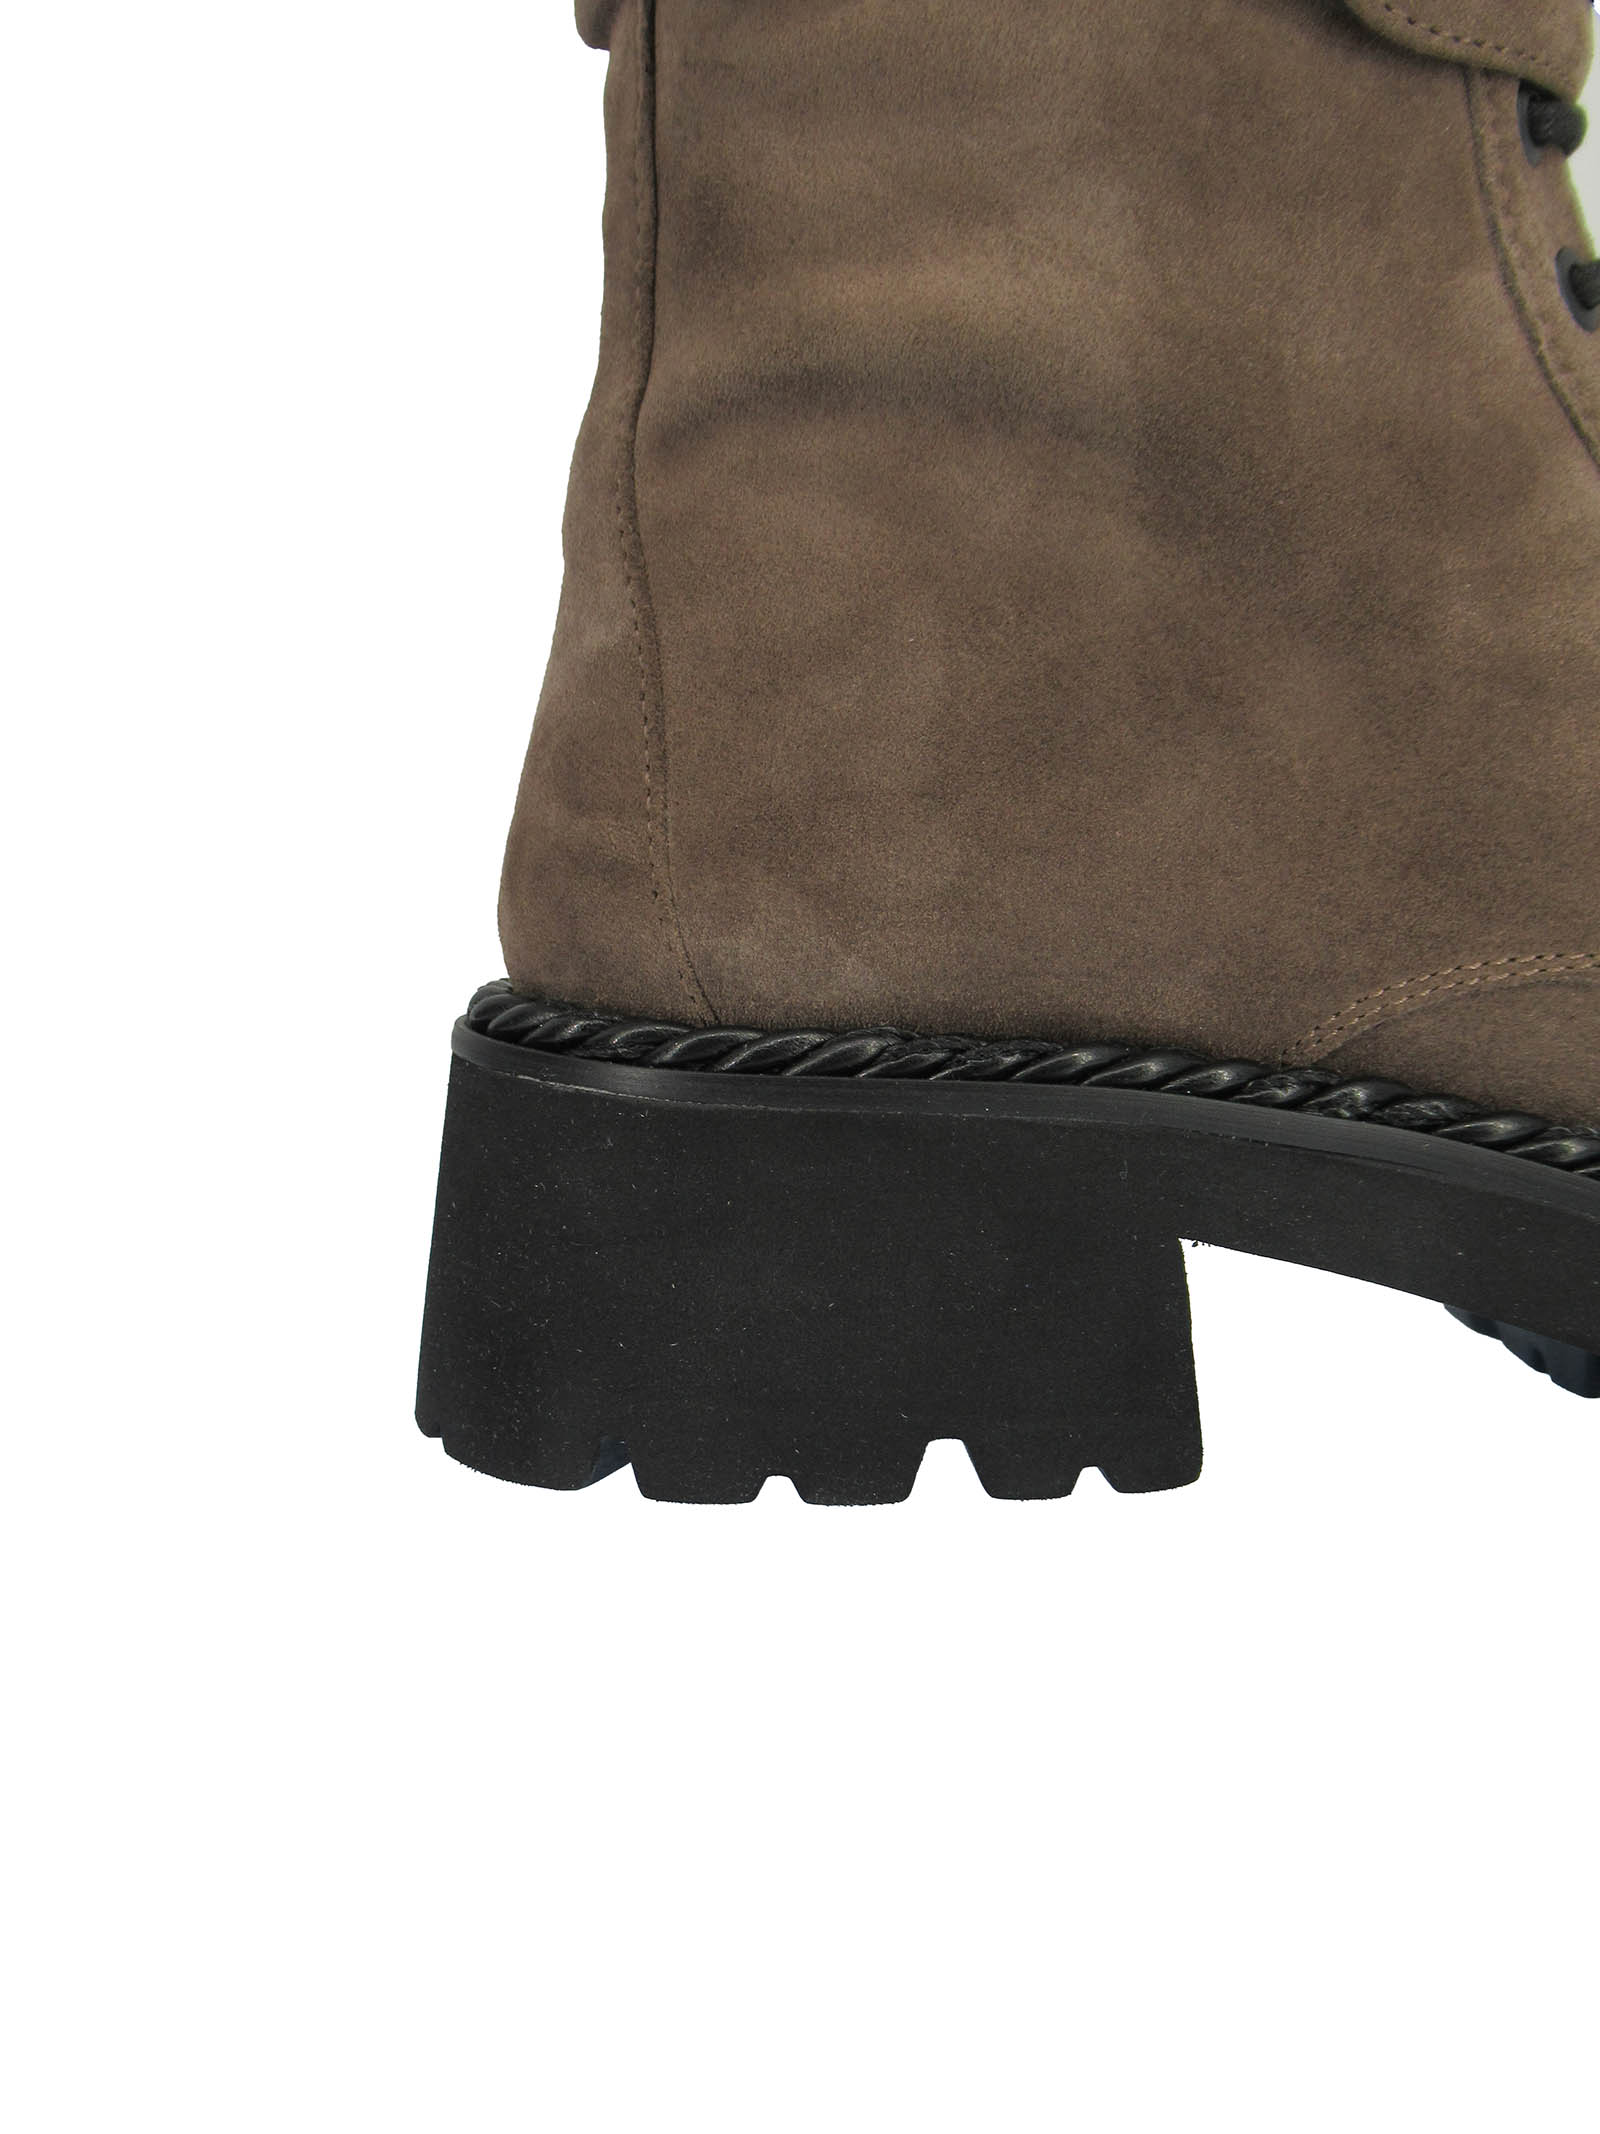 Women's Shoes Amphibious Laced Ankle Boots in Taupe Suede with Strap and Accessory Rubber Sole Tank Bruno Premi | Ankle Boots | BC3406X023